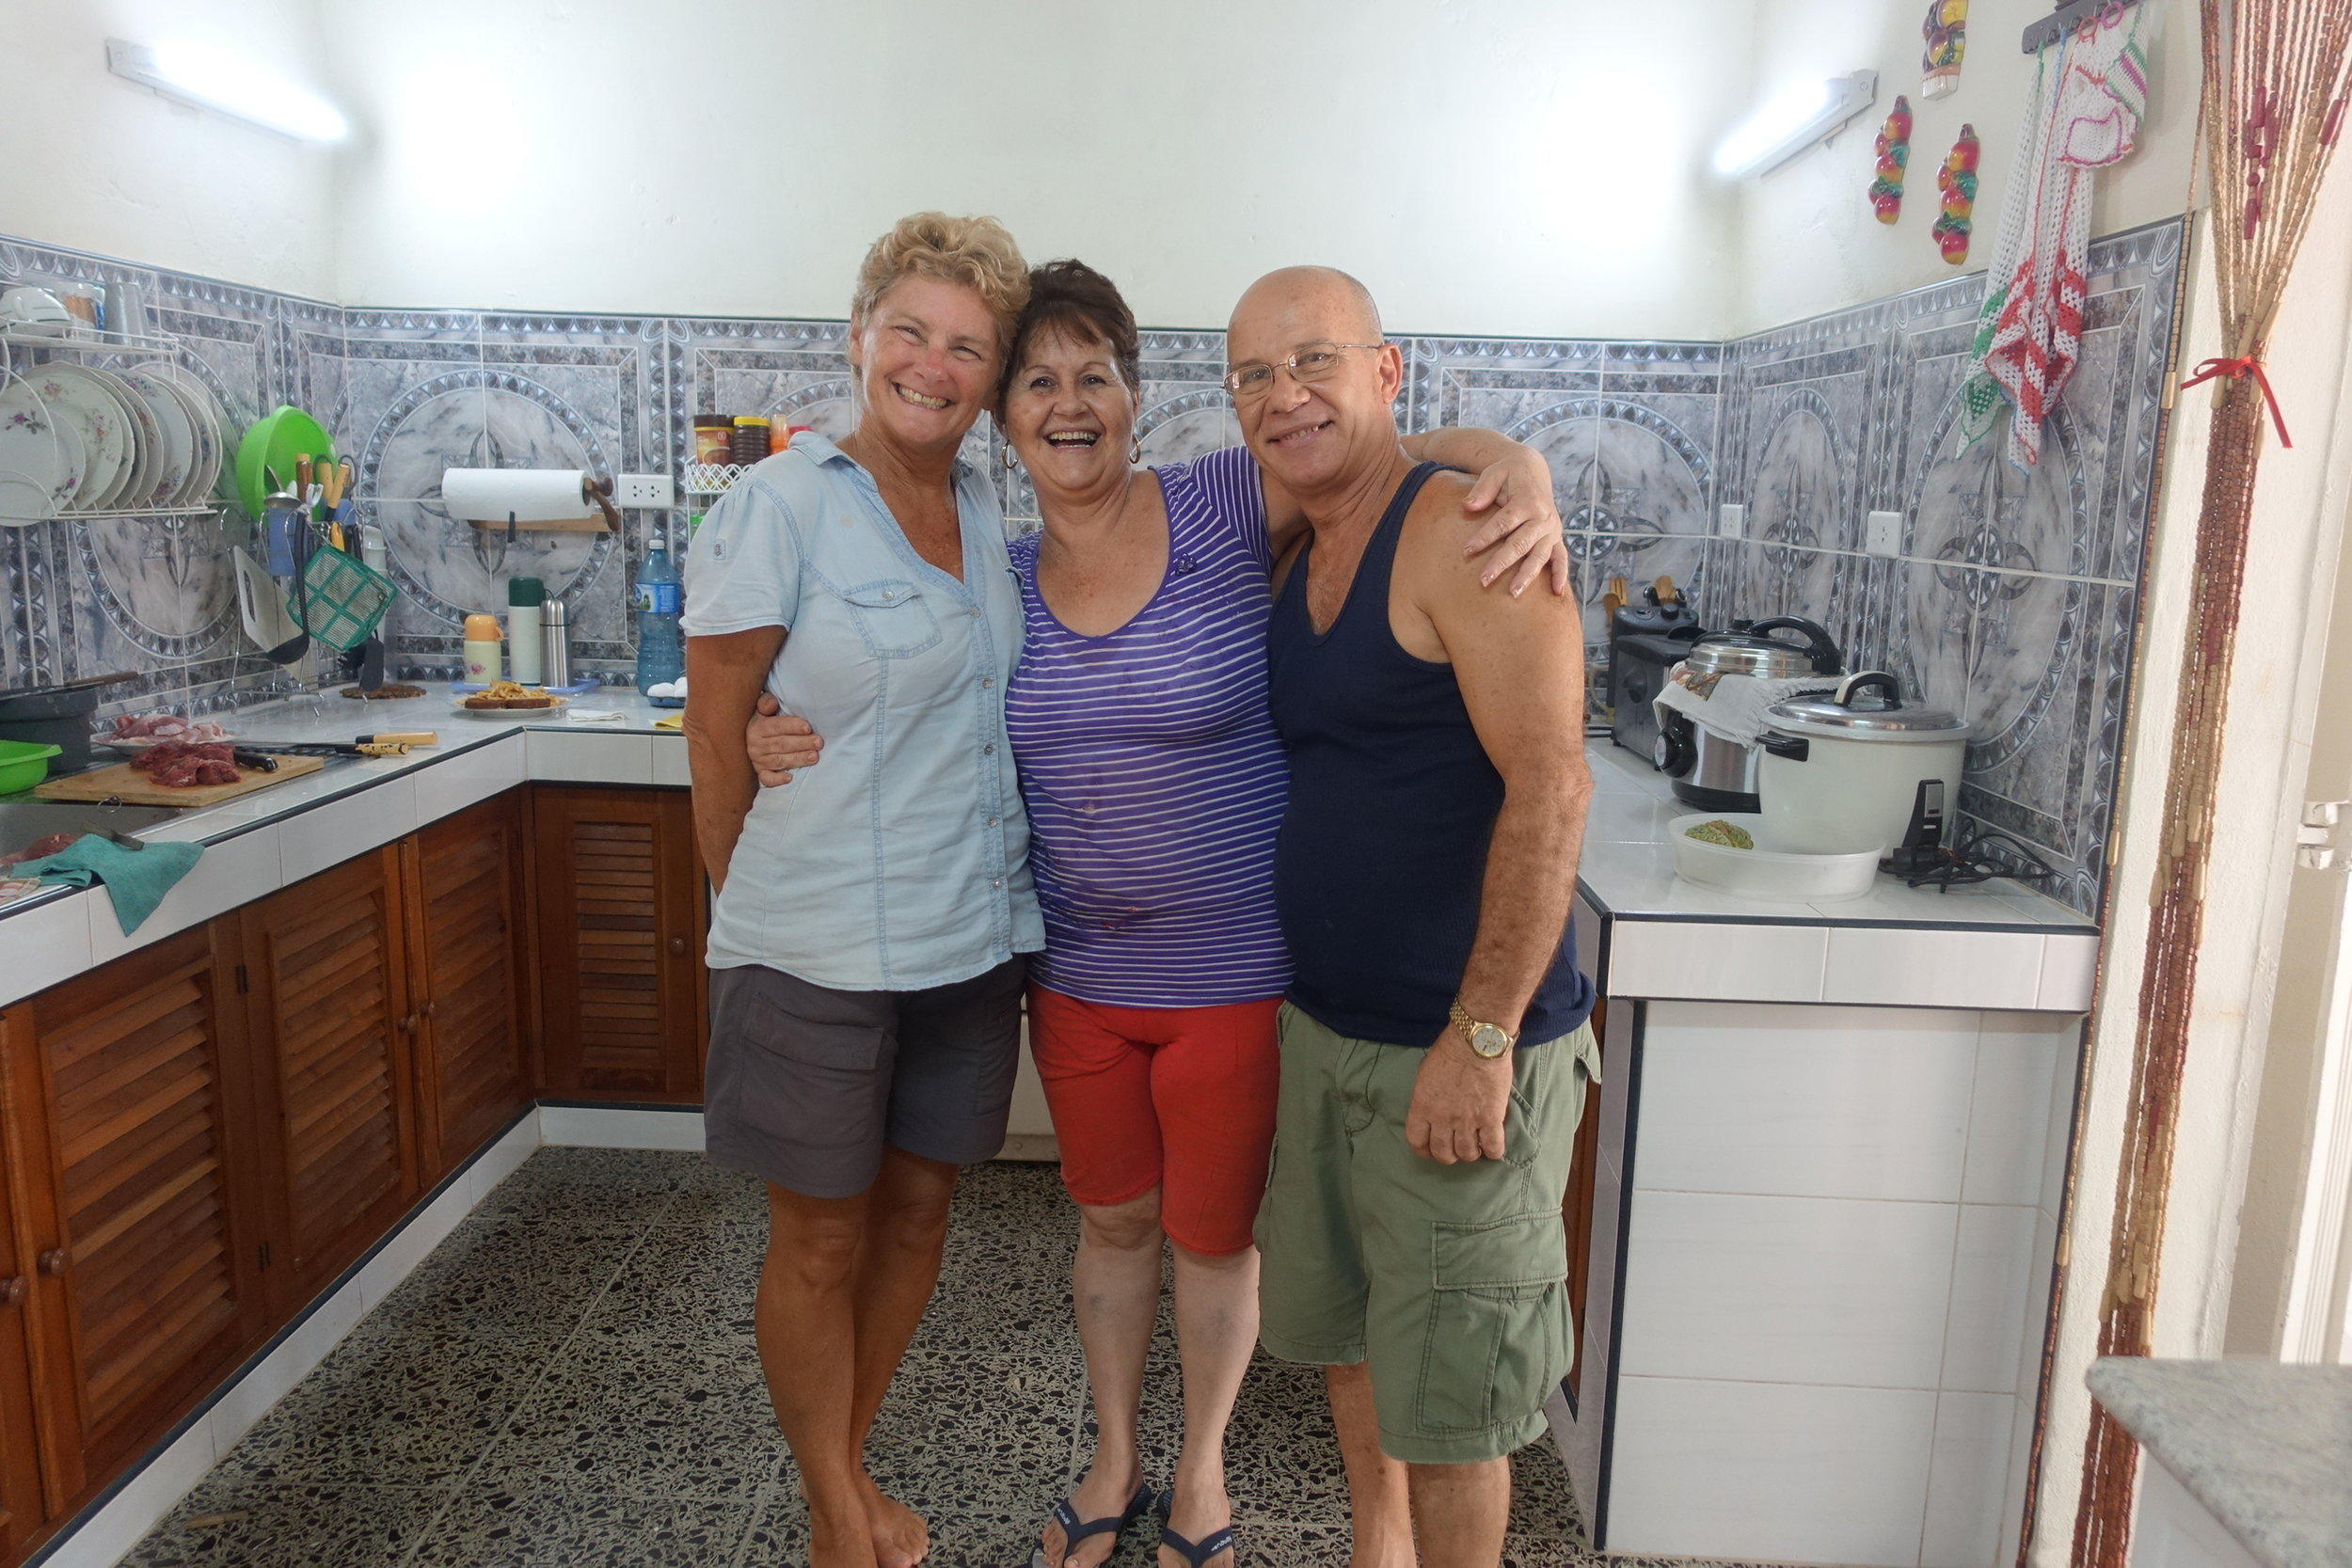 our wonderful hosts in Cienfuegos, dinorah and raul